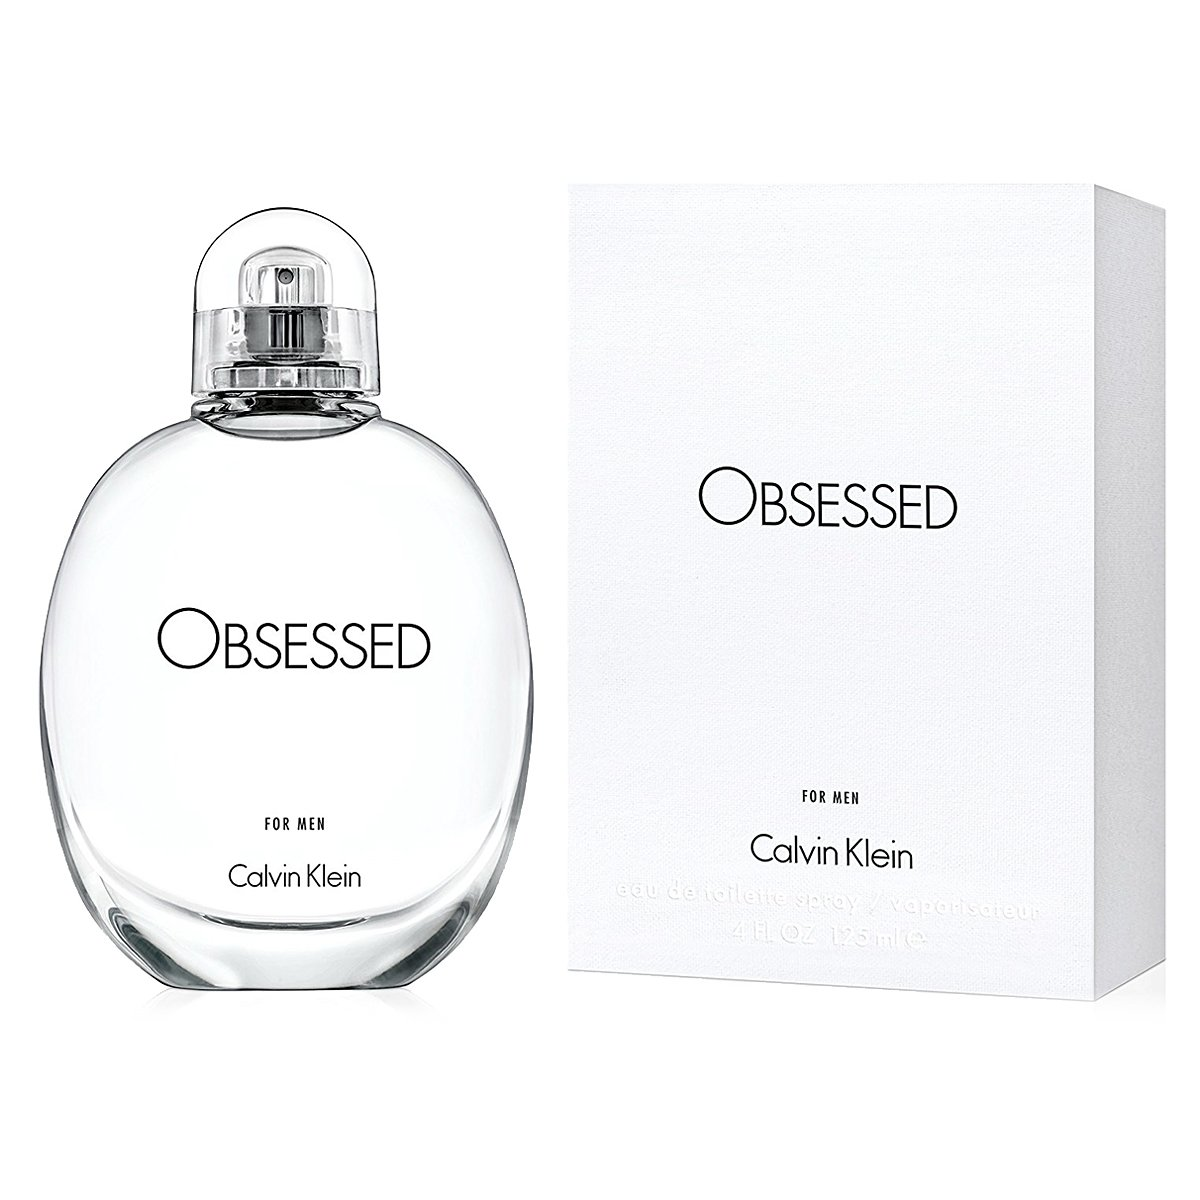 CK Obsessed Men edt